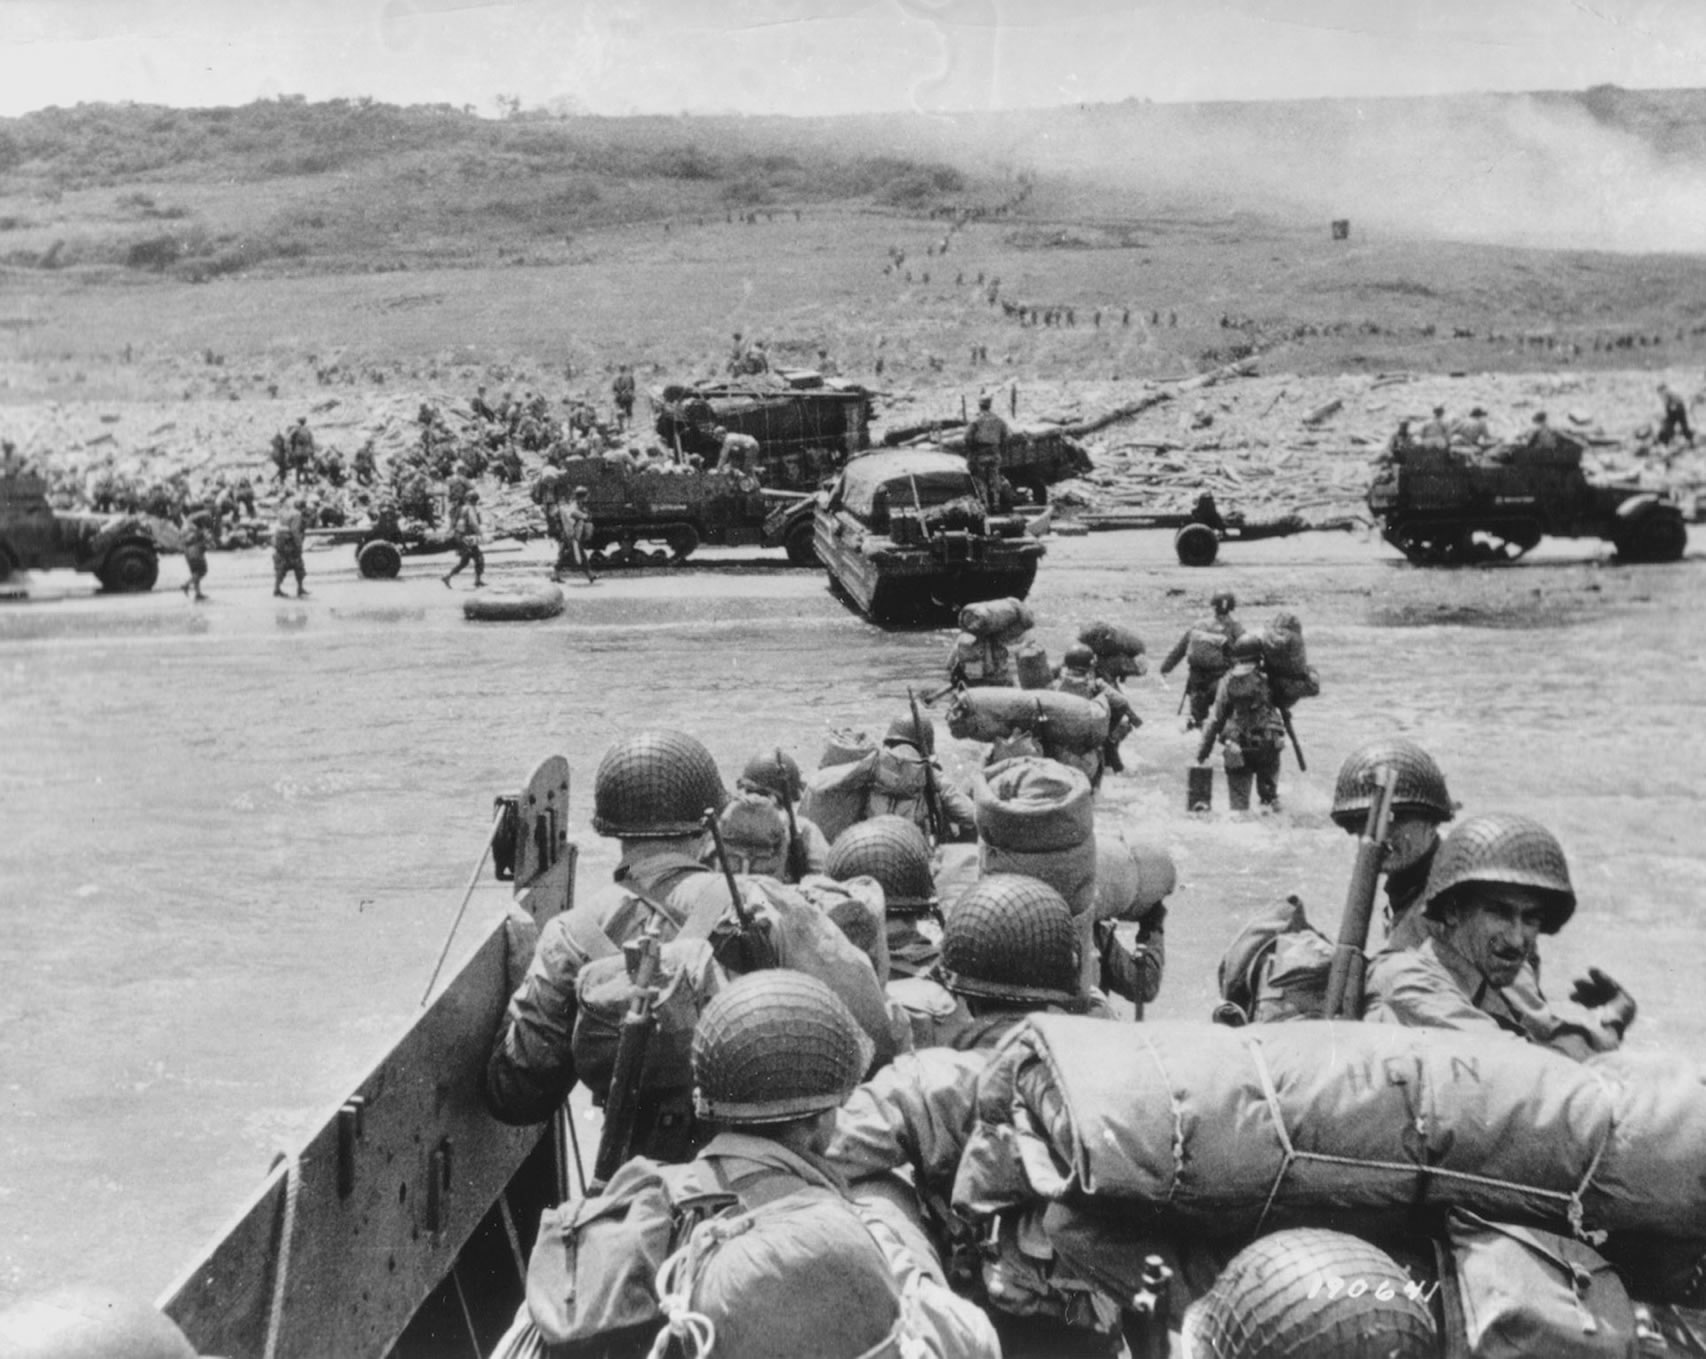 D-Day Beaches, June 6 1944